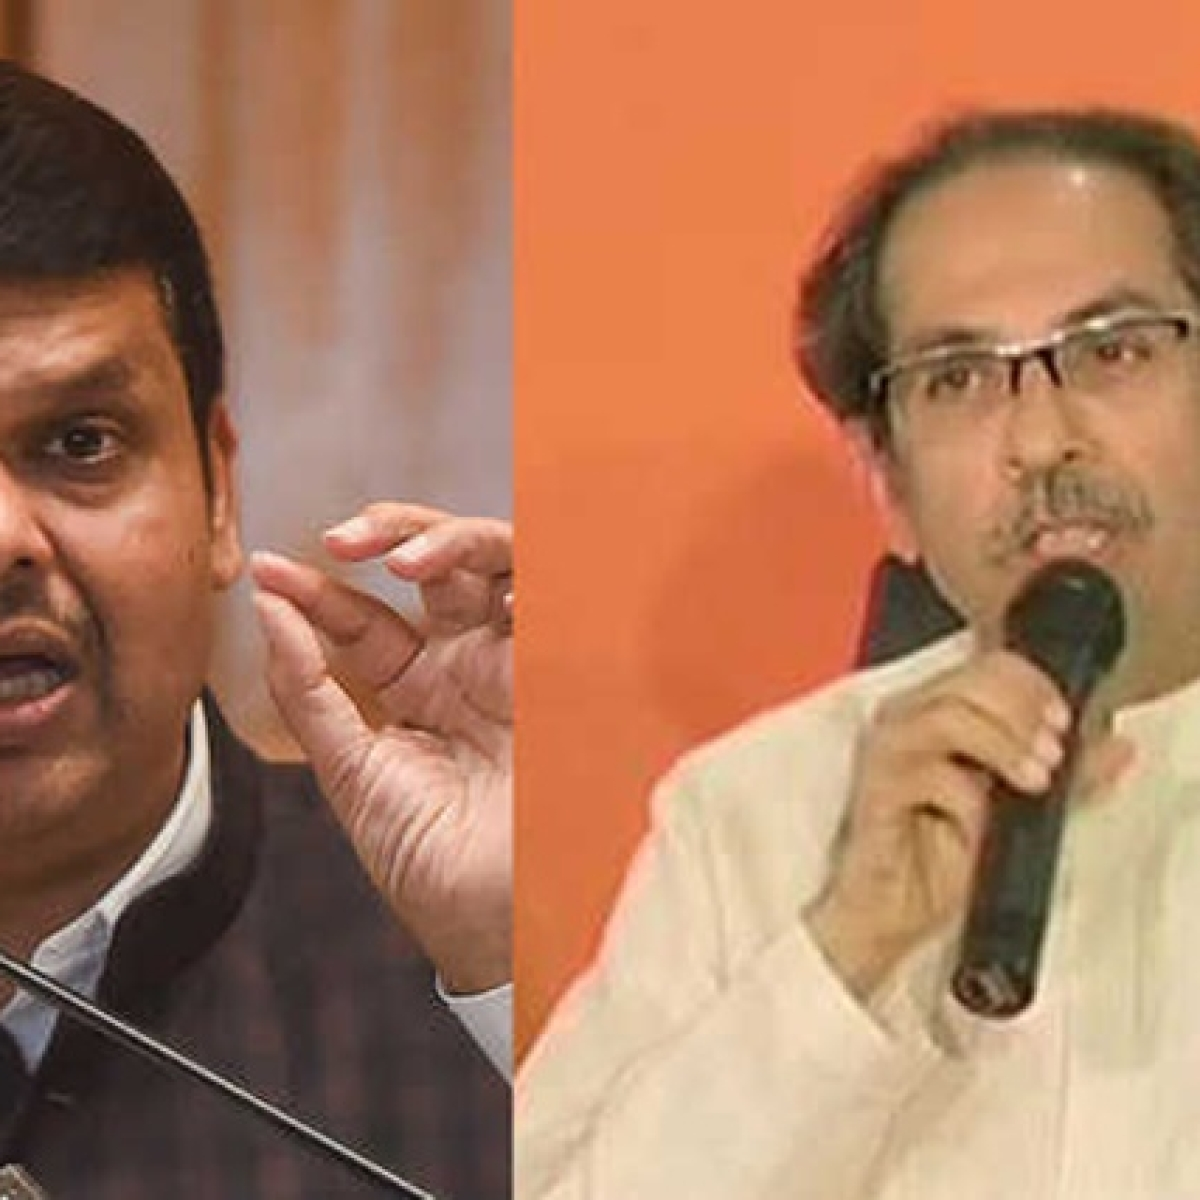 'Shocked to see BMC give legitimacy to PFI': Devendra Fadnavis targets Uddhav over link to Islamist group